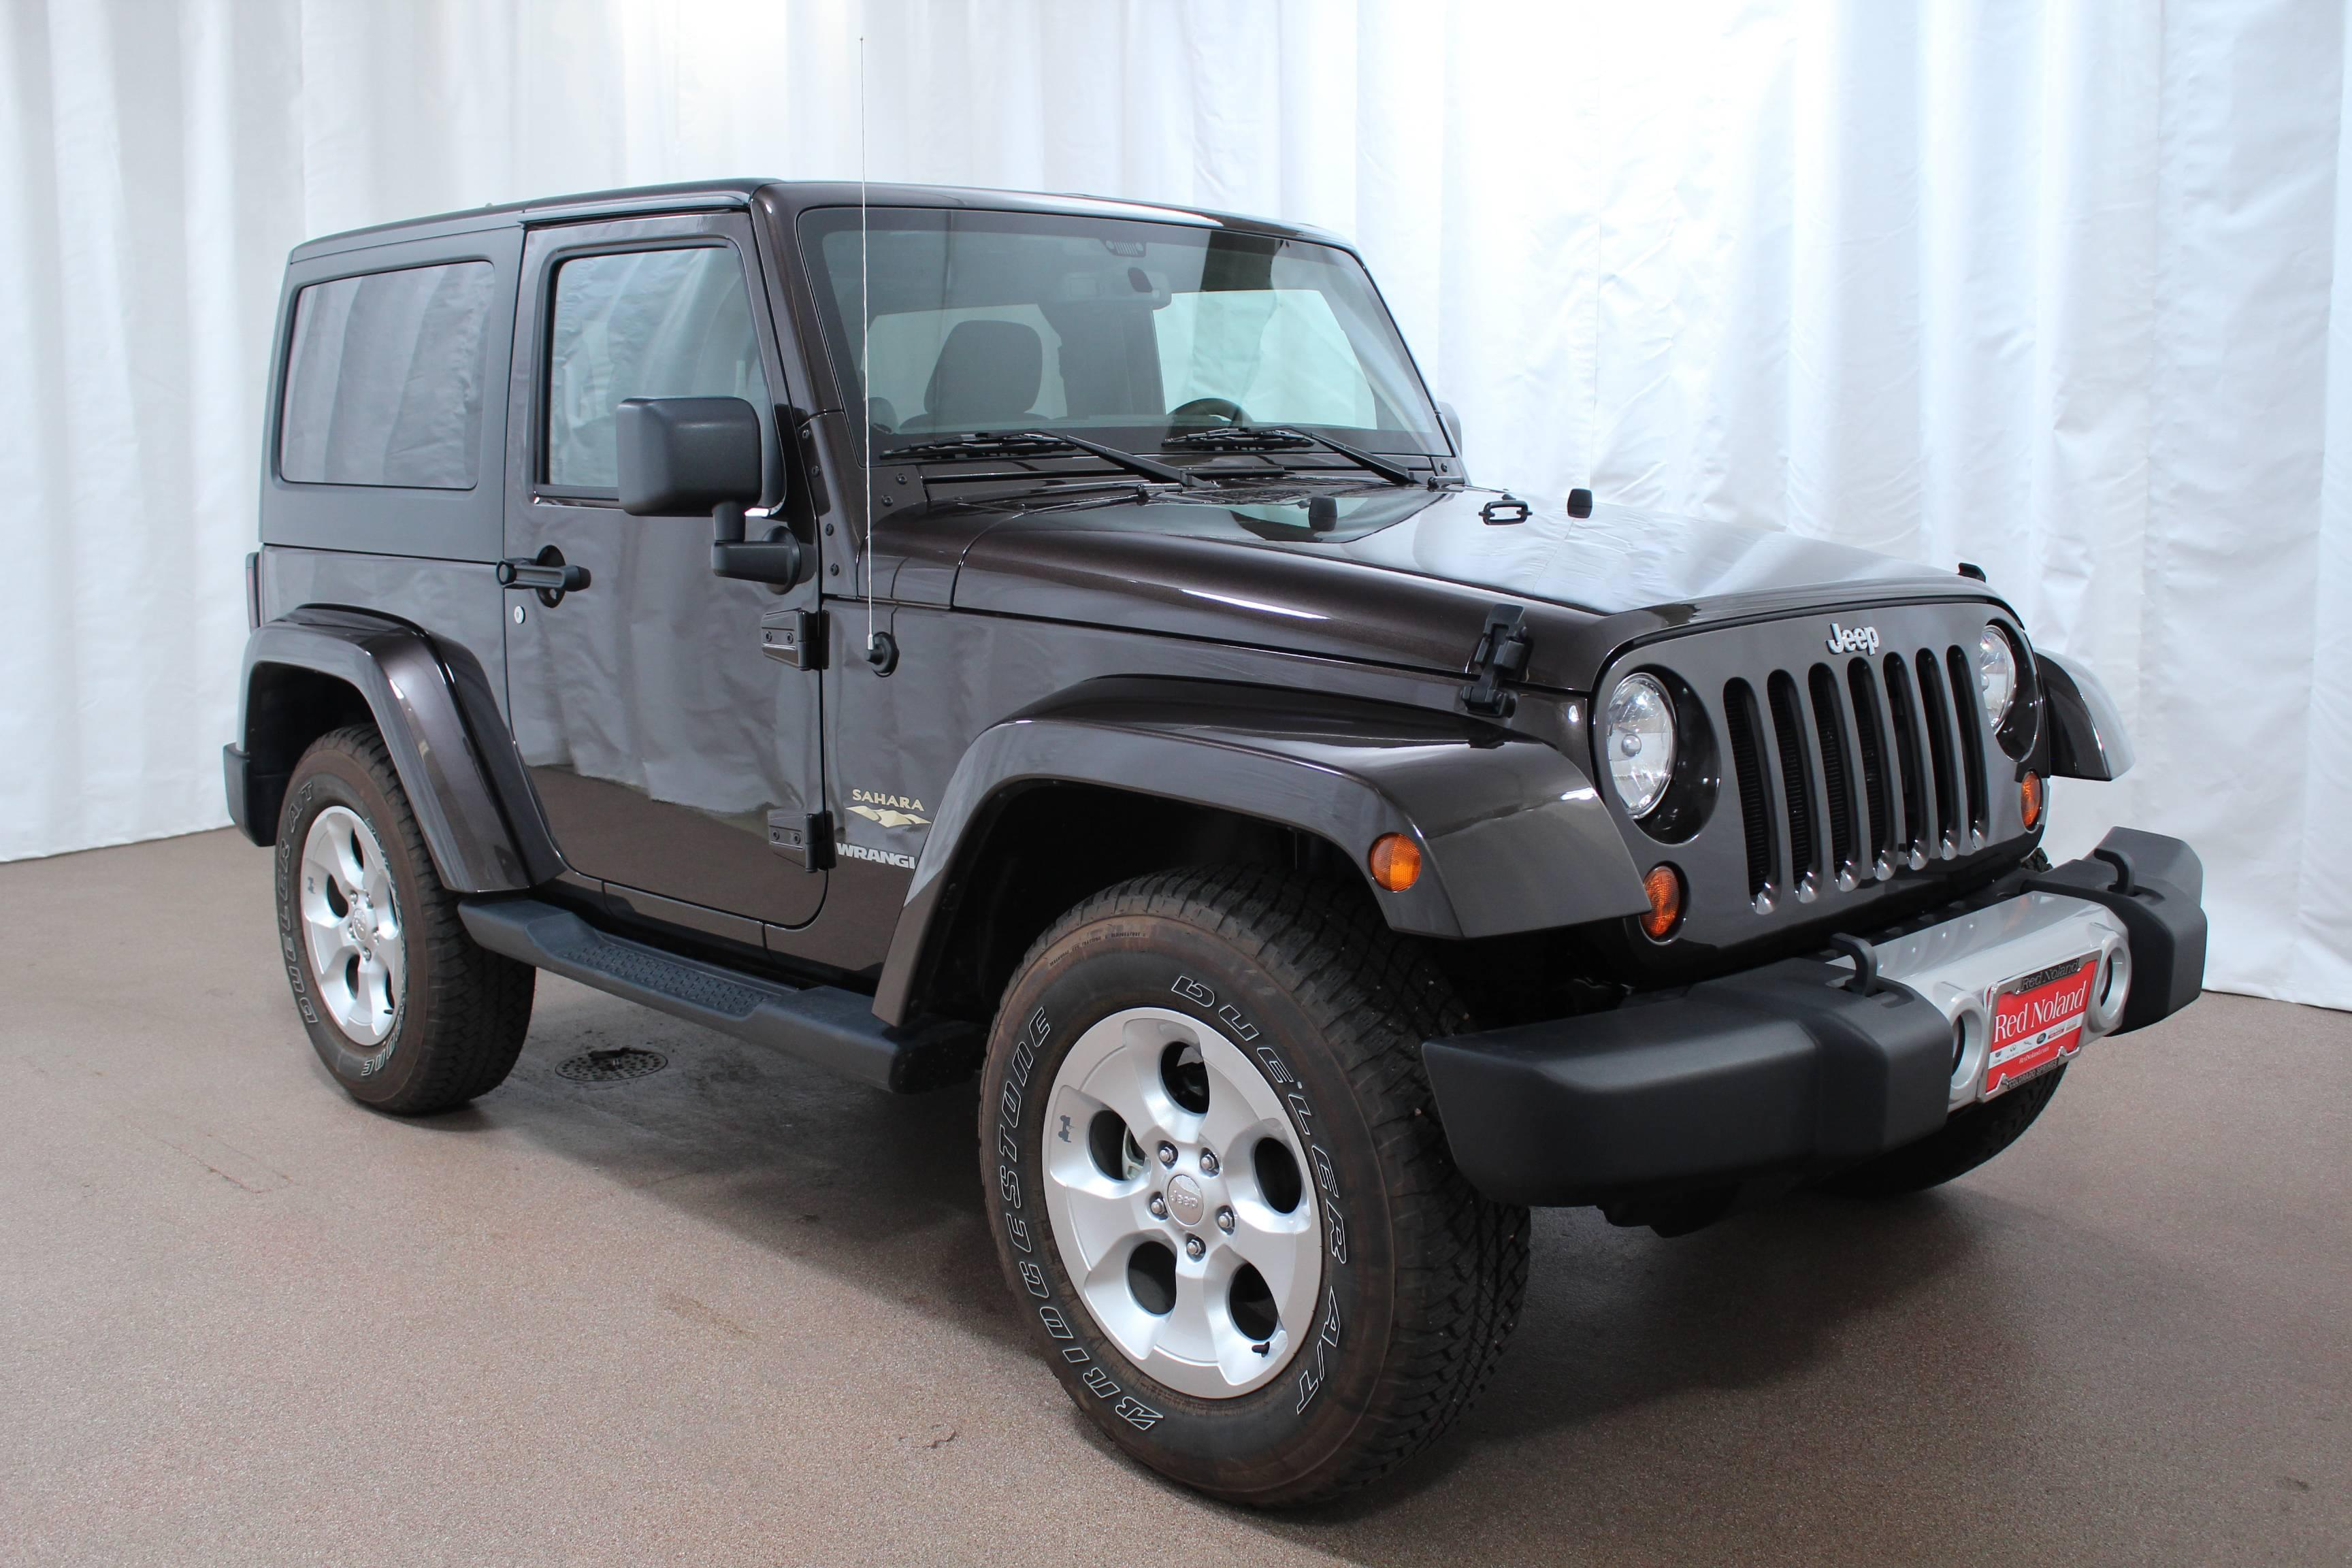 2013 Jeep Wrangler at Red Noland Used